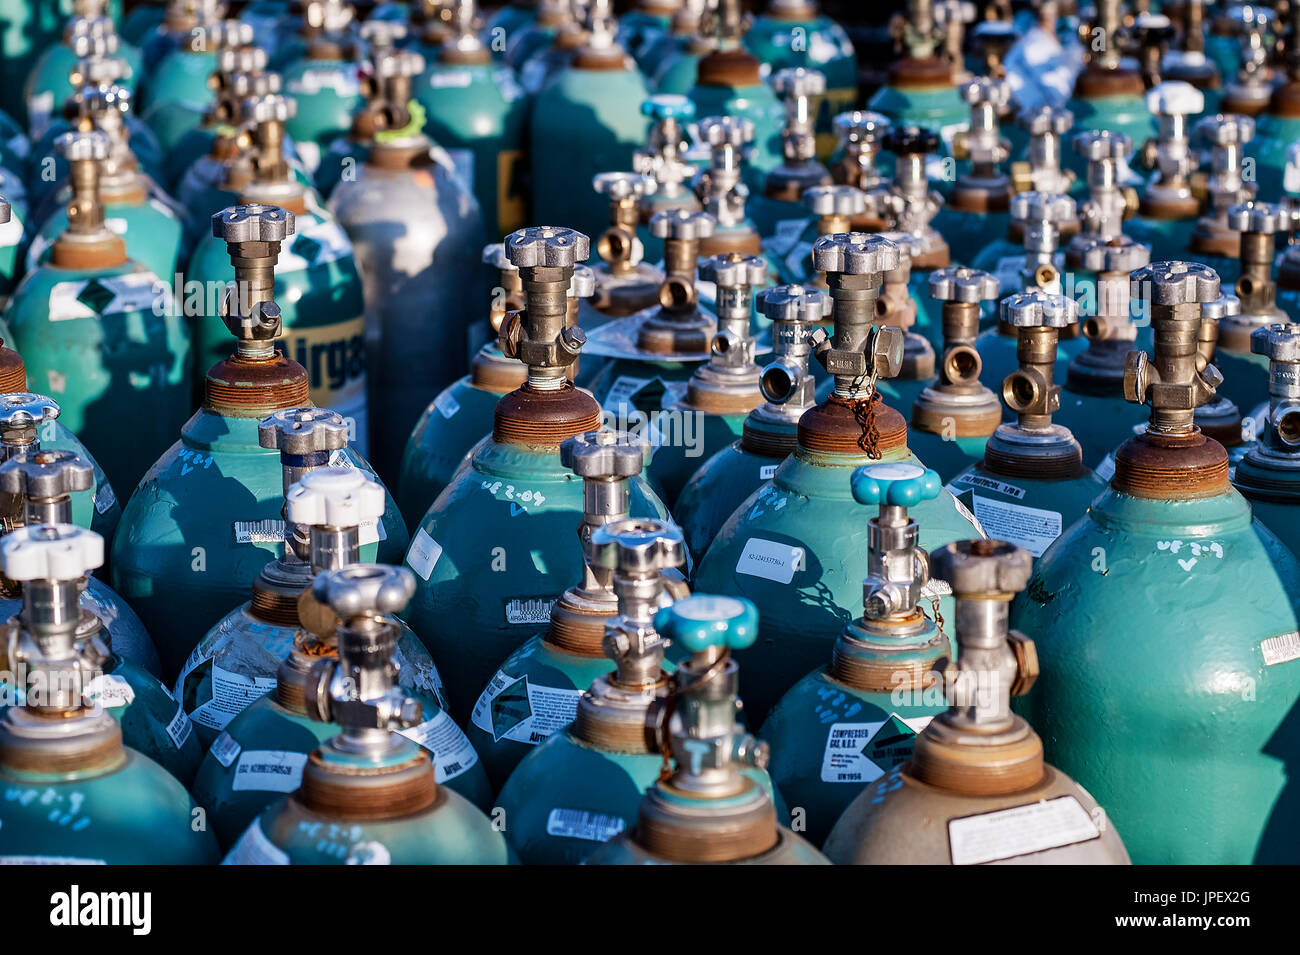 Compressed industrial gas products. - Stock Image